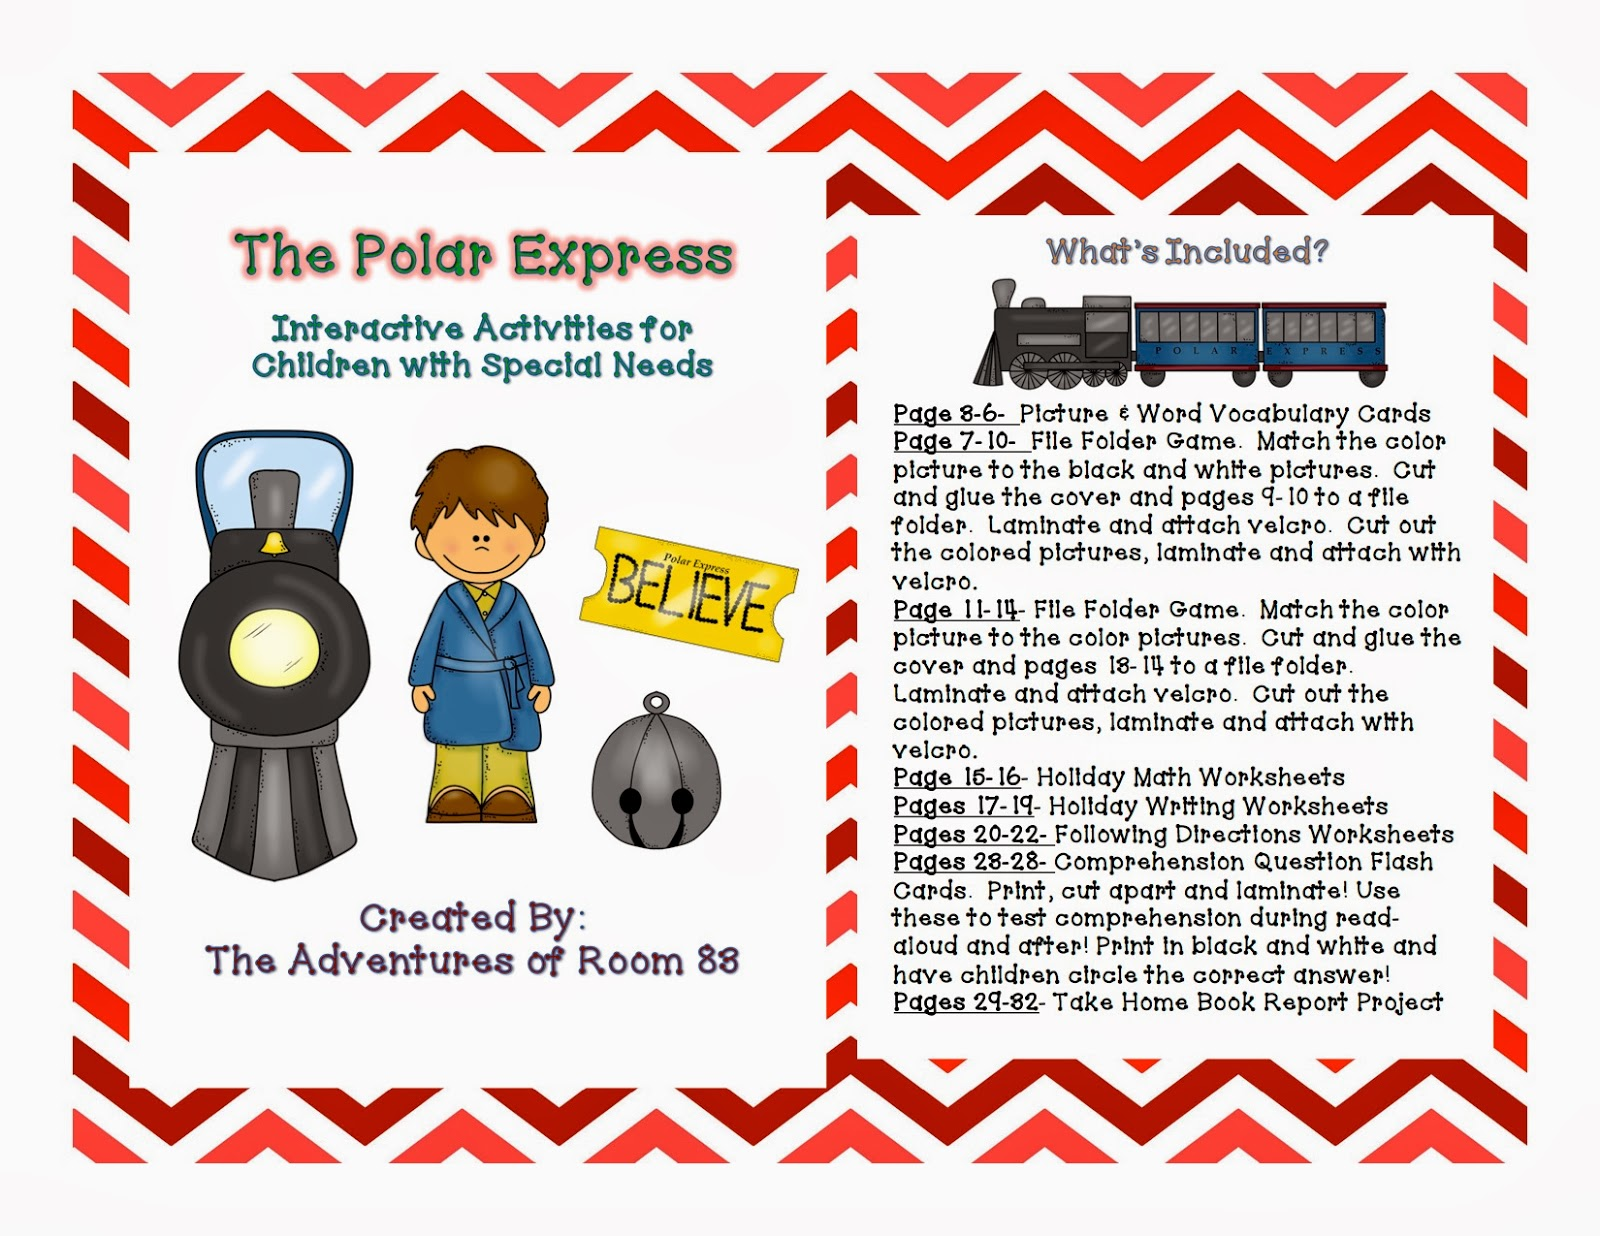 The Polar Express Book Of The Month Autism Adventures